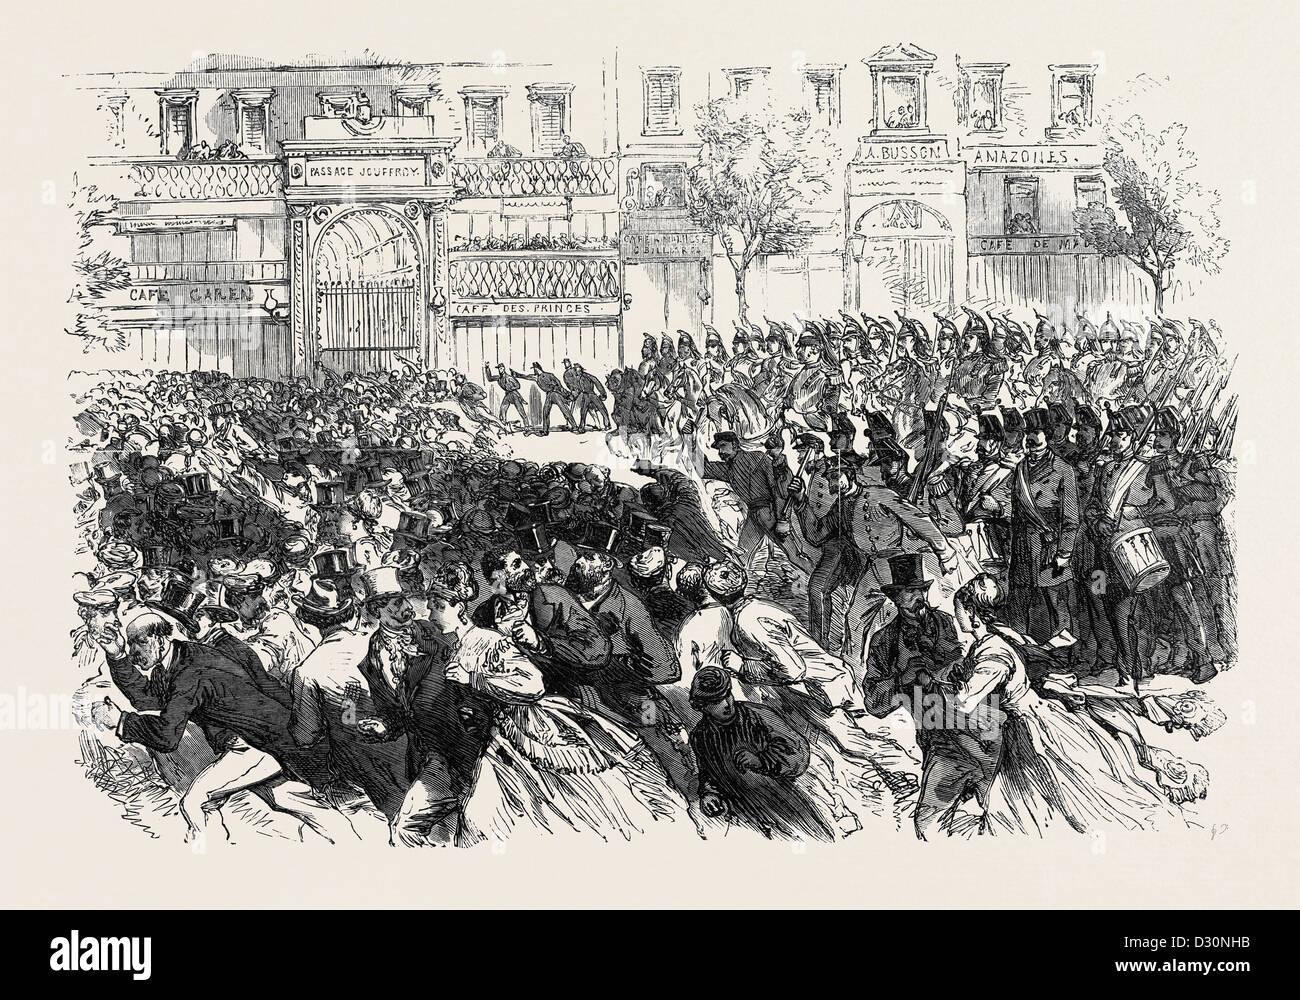 THE DISTURBANCES IN PARIS: CAVALRY CLEARING THE BOULEVARDS ON THE NIGHT OF JUNE 10 1869 FRANCE - Stock Image